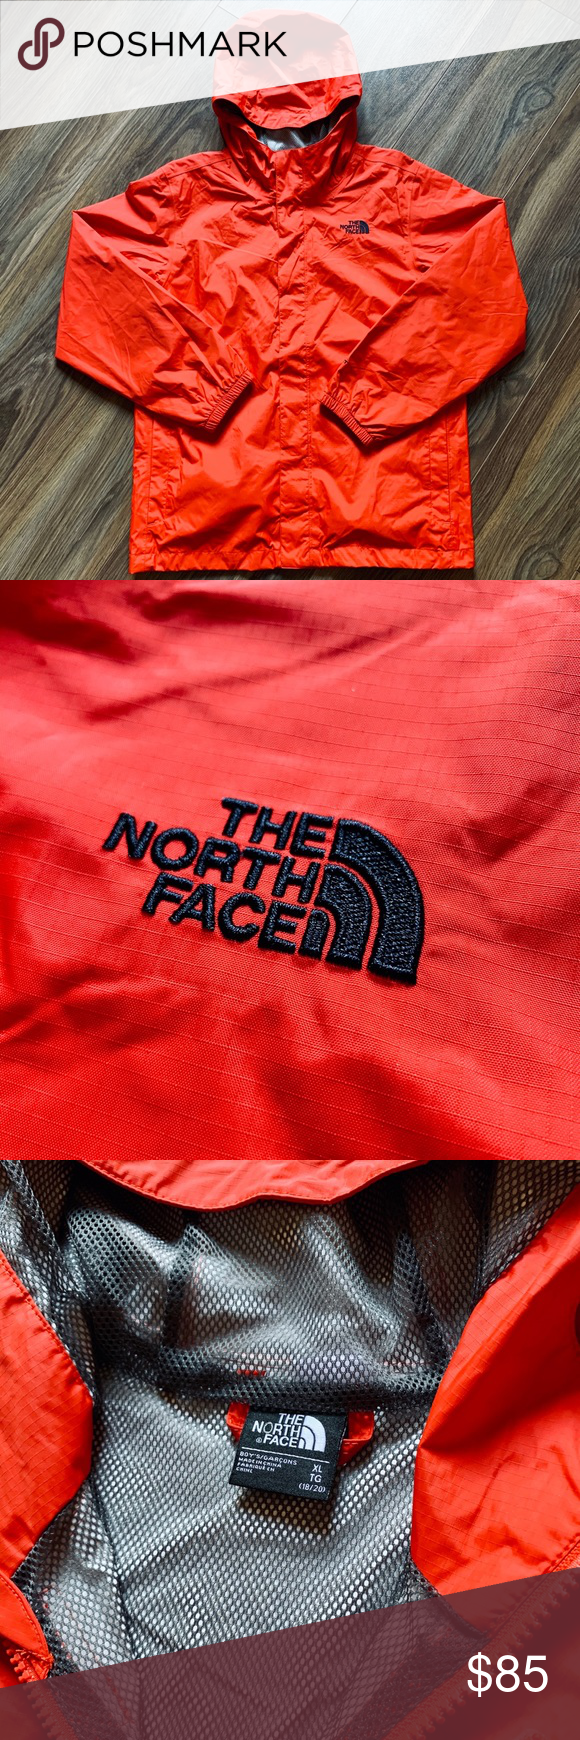 NWOT Youth TNF The North Face Rain Jacket NWOT Youth TNF The North Face Rain Jacket  RedOrange   Youth XL  The North Face Jackets & Coats Raincoats